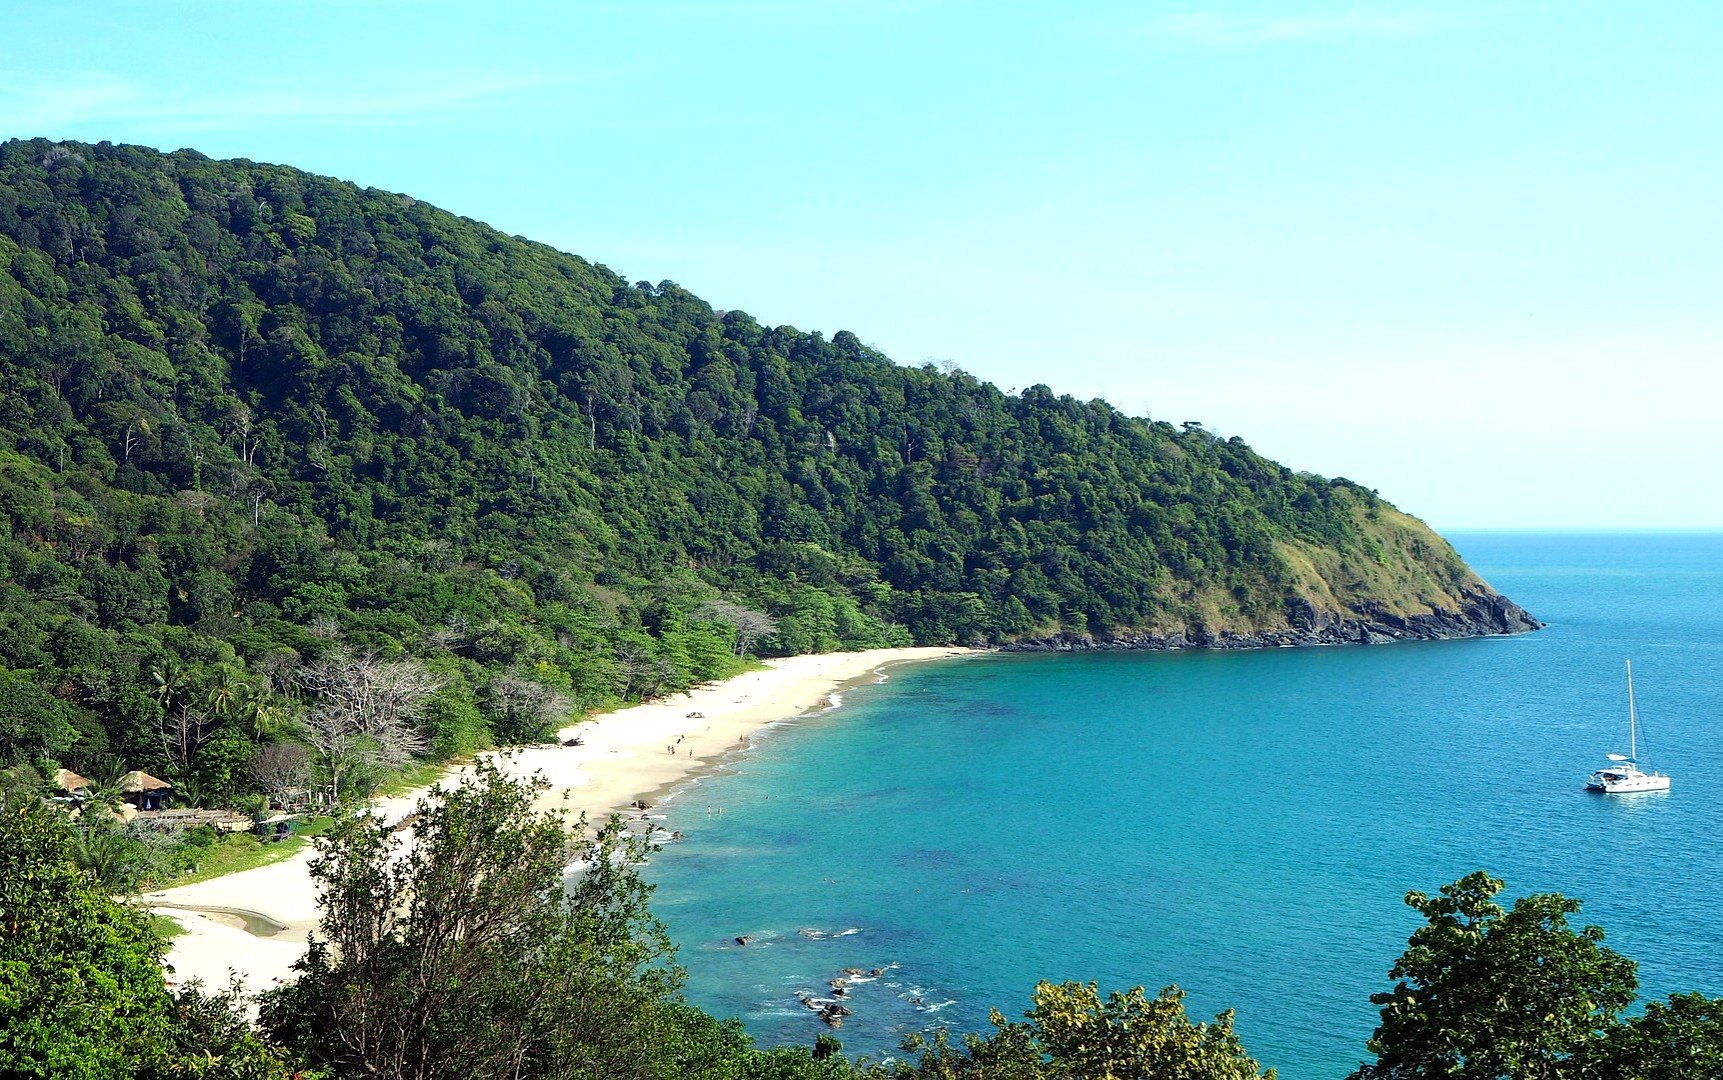 Beach in Koh Lanta